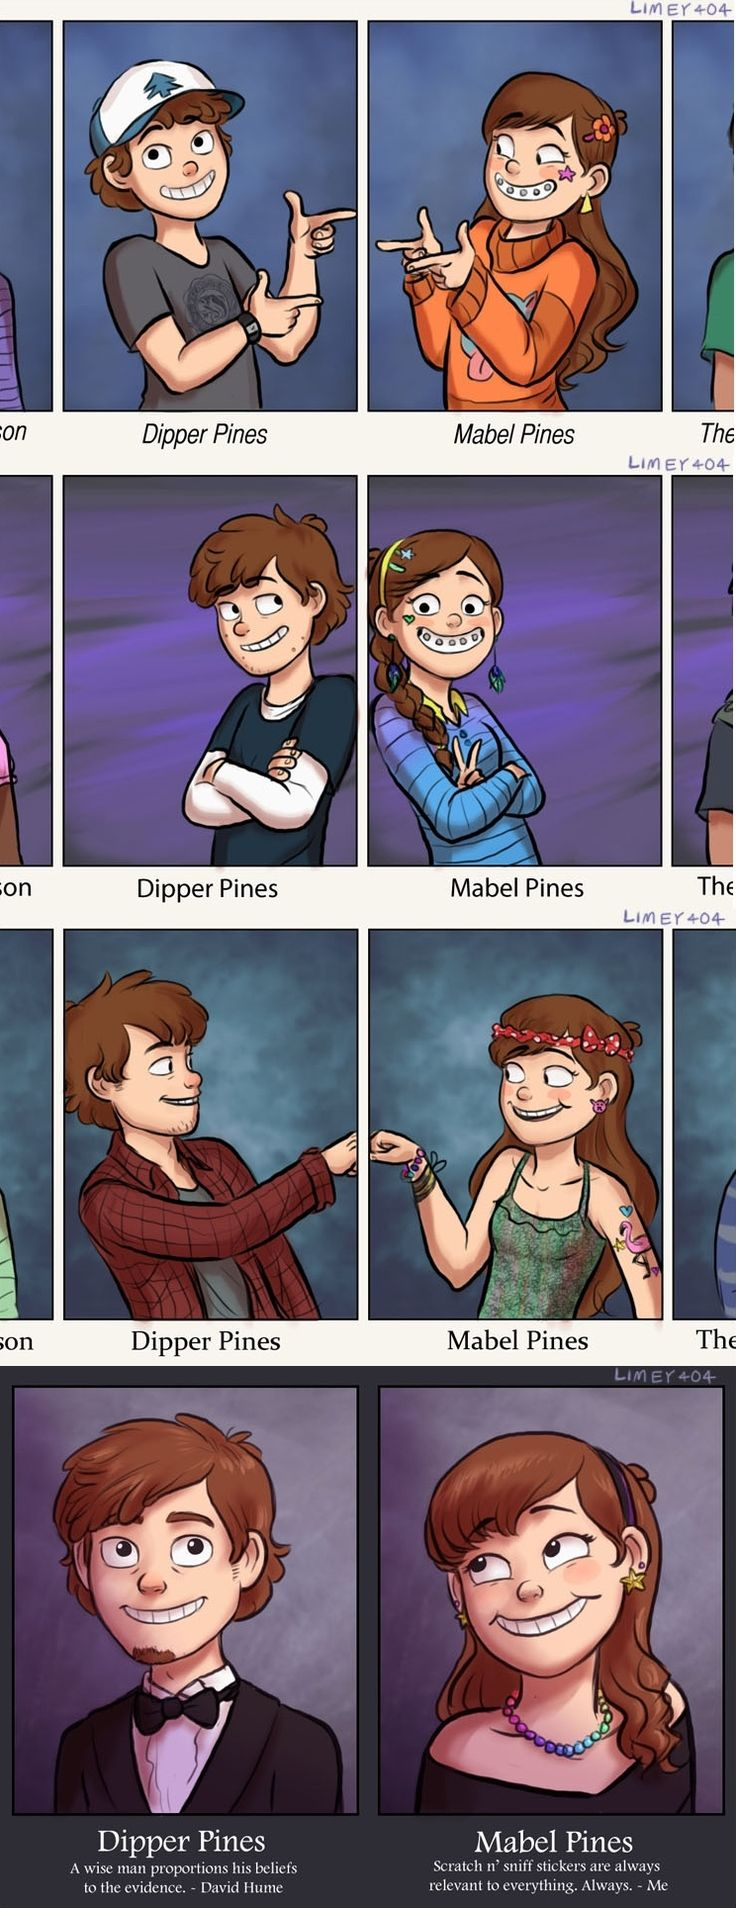 Dipper and Mabel Gravity Falls Yearbook. So cute and clever, I love it.